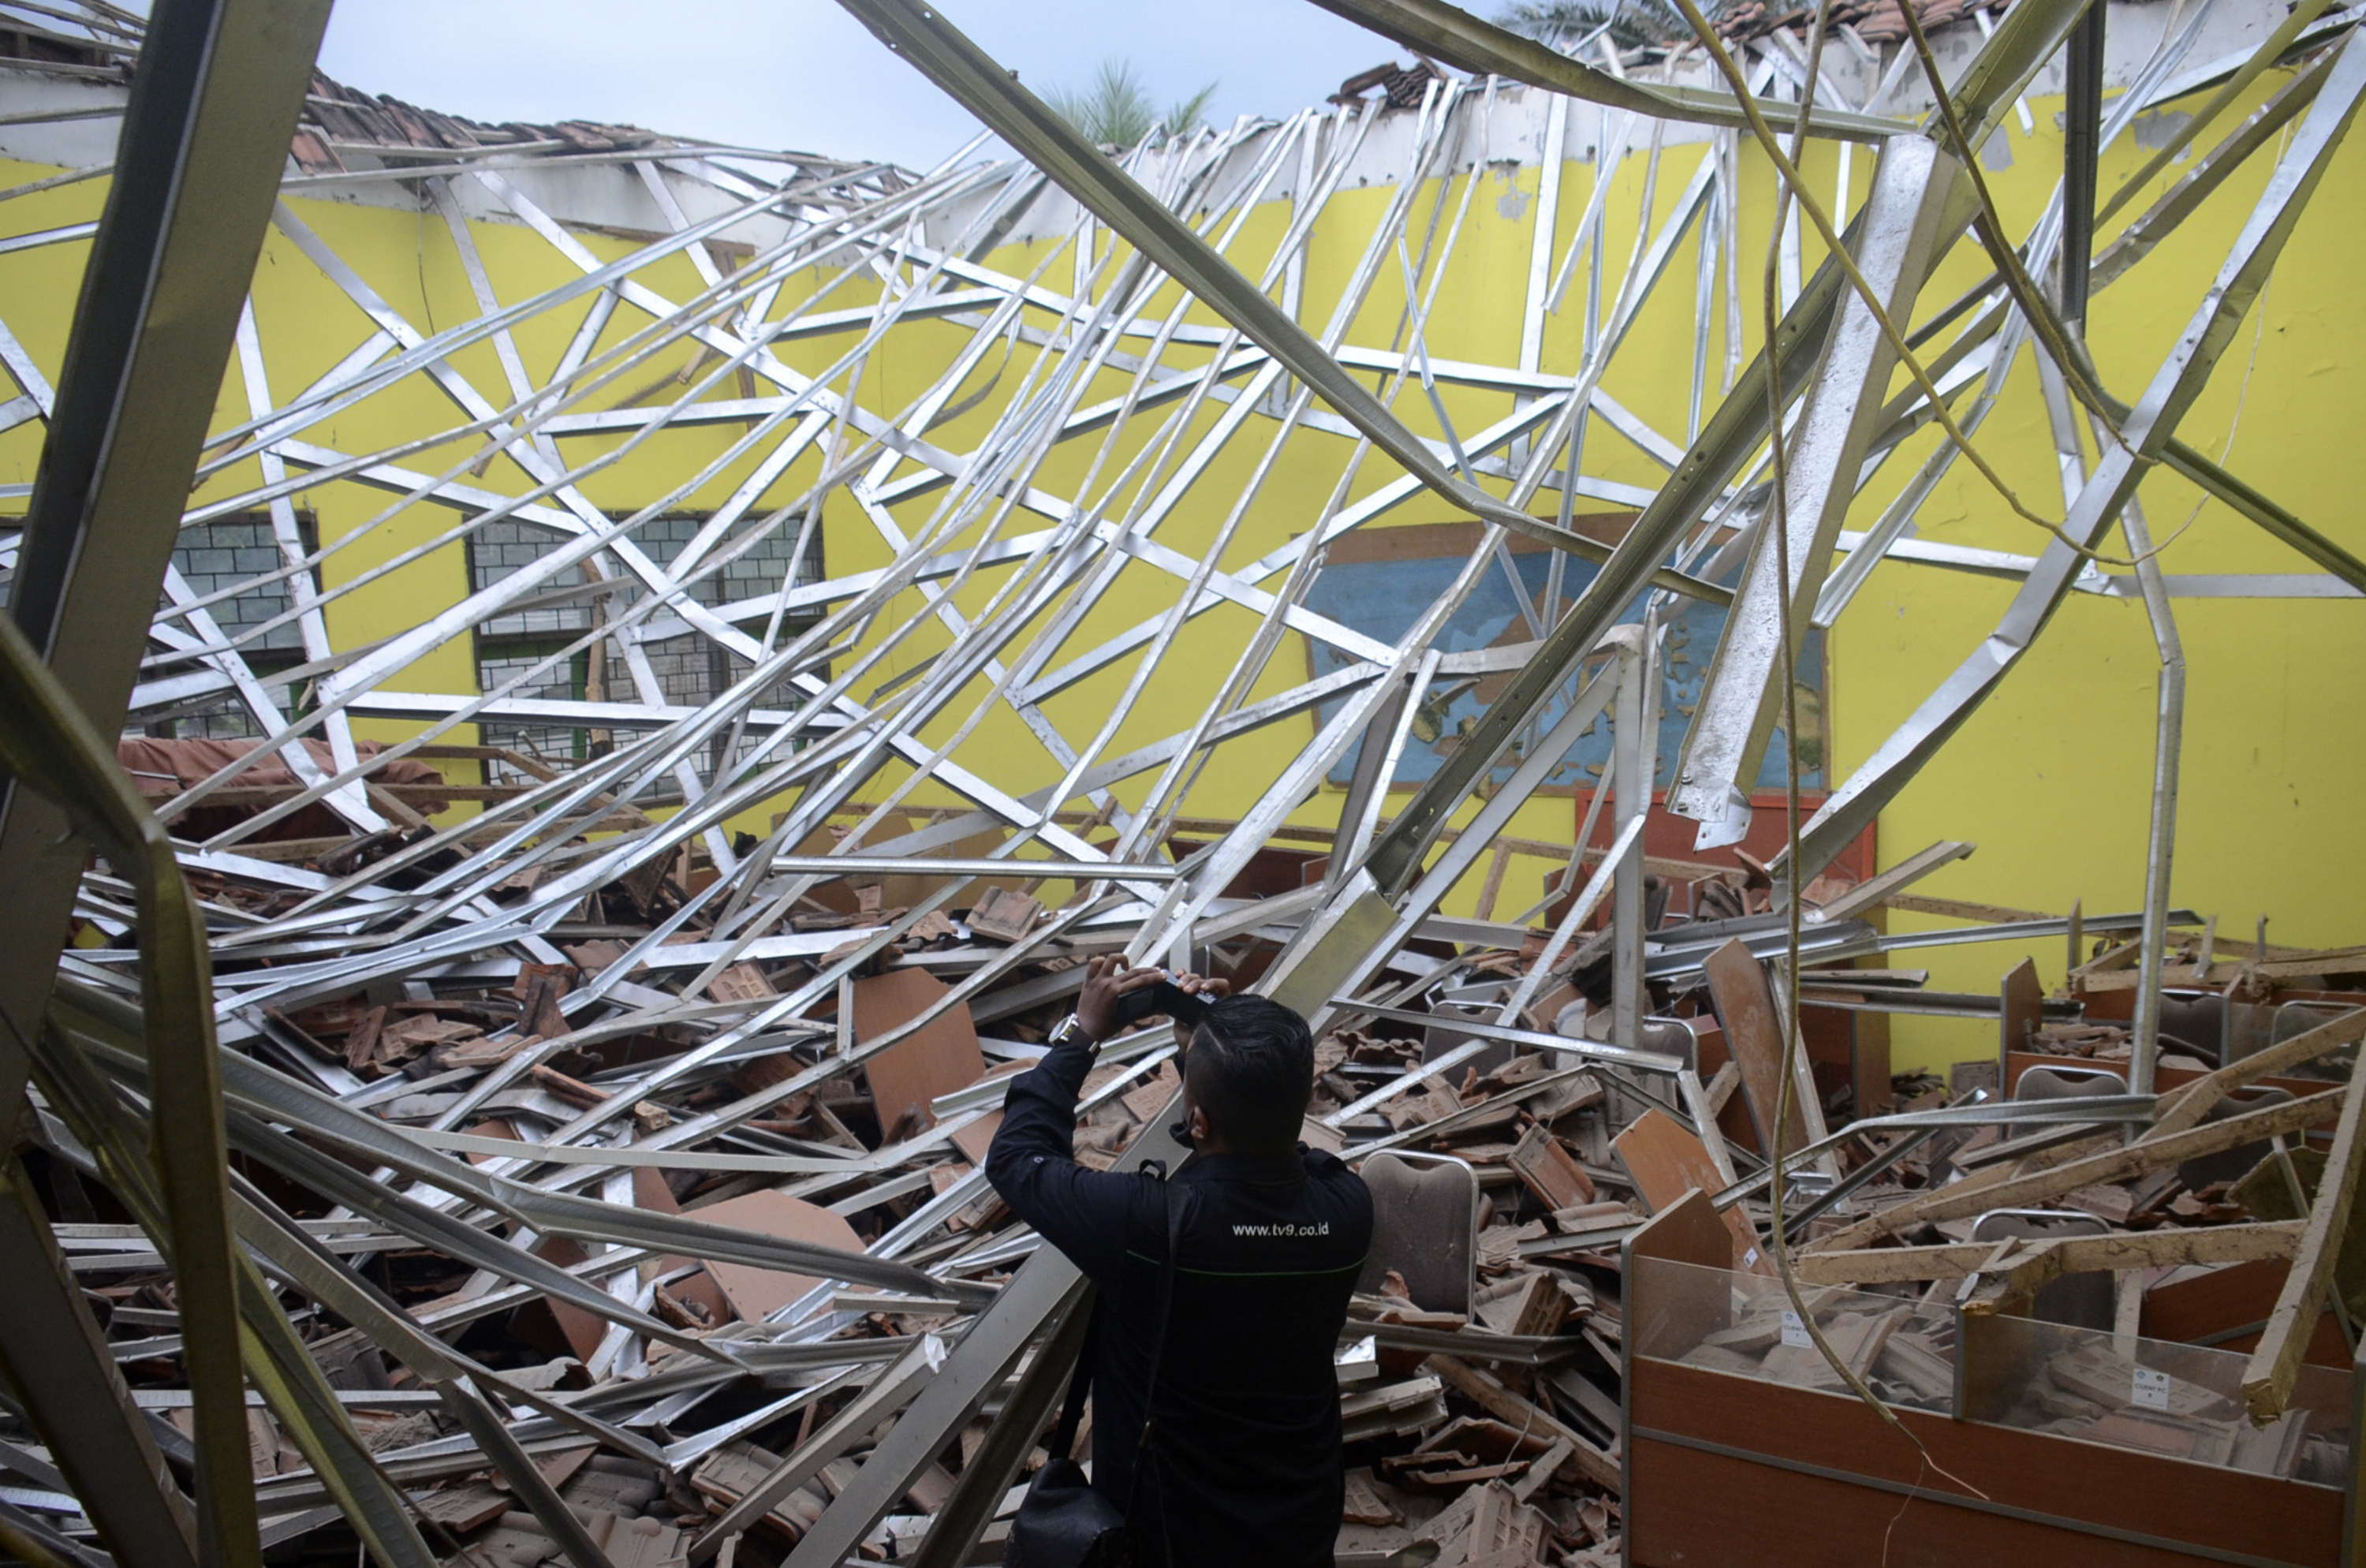 A local journalist films the damage to a class room at a school following an earthquake in Malang, East Java, Indonesia, on April 10, 2021.